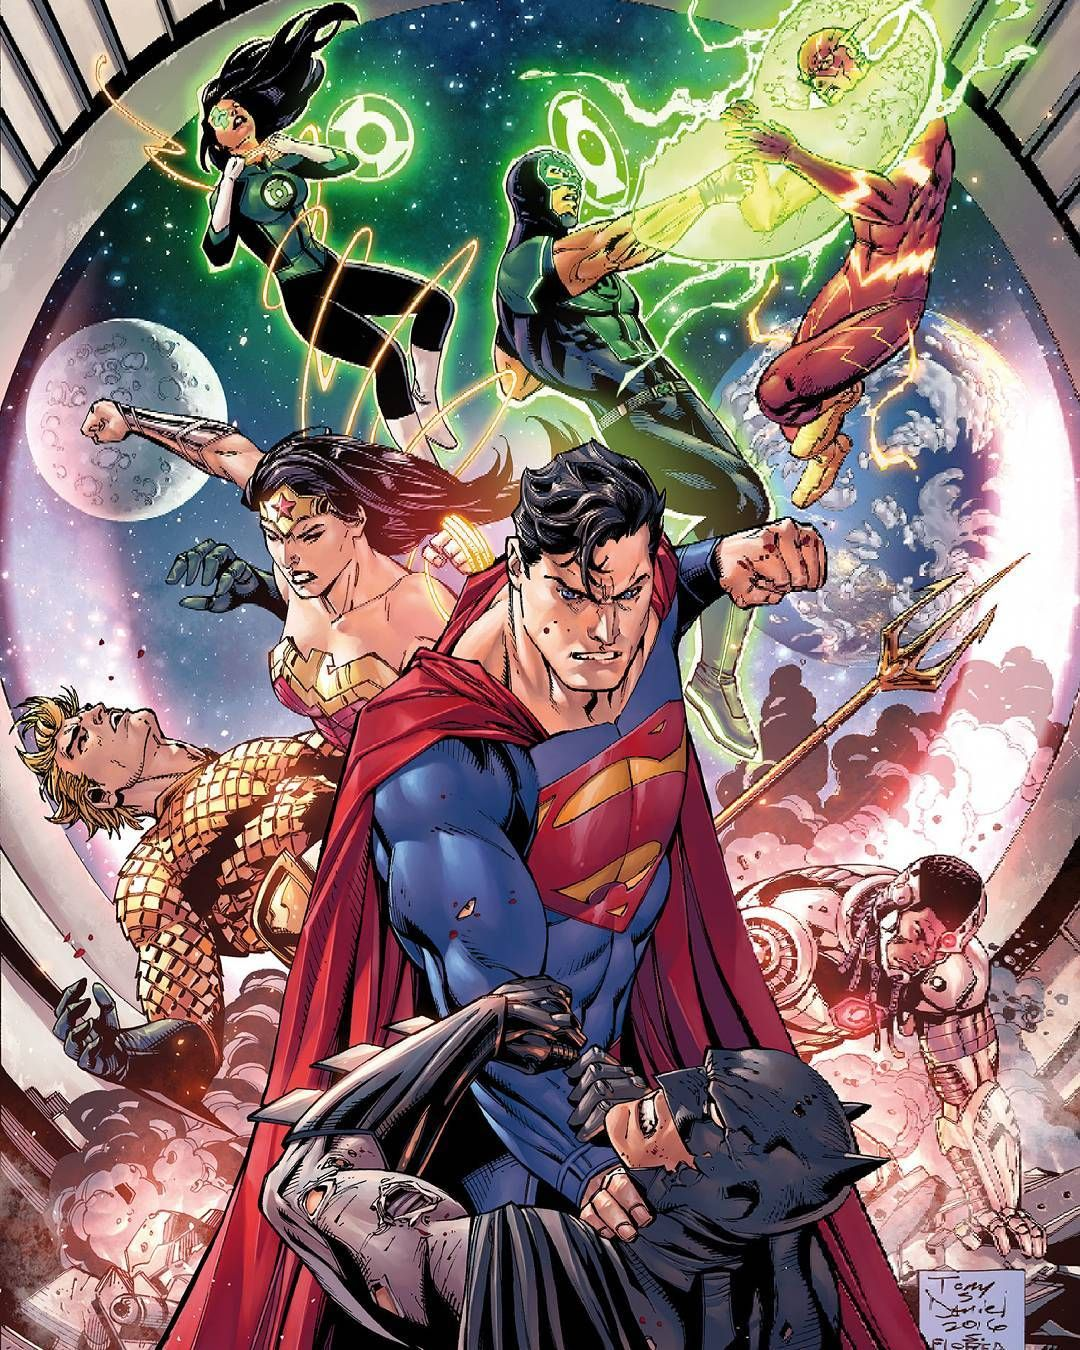 Justice League Volume 3 7 Cover Justiceleaguerebirth New52 Justiceleague Justiceleaguecomics Superheroes Superman Justice League Dc Comics Art Comics